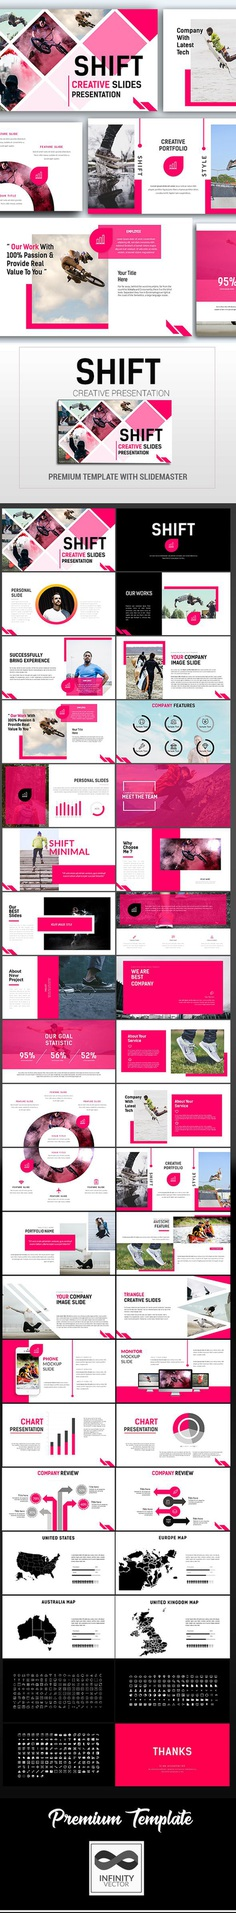 Shift Creative Presentation - graphicriver.net Item for Sale